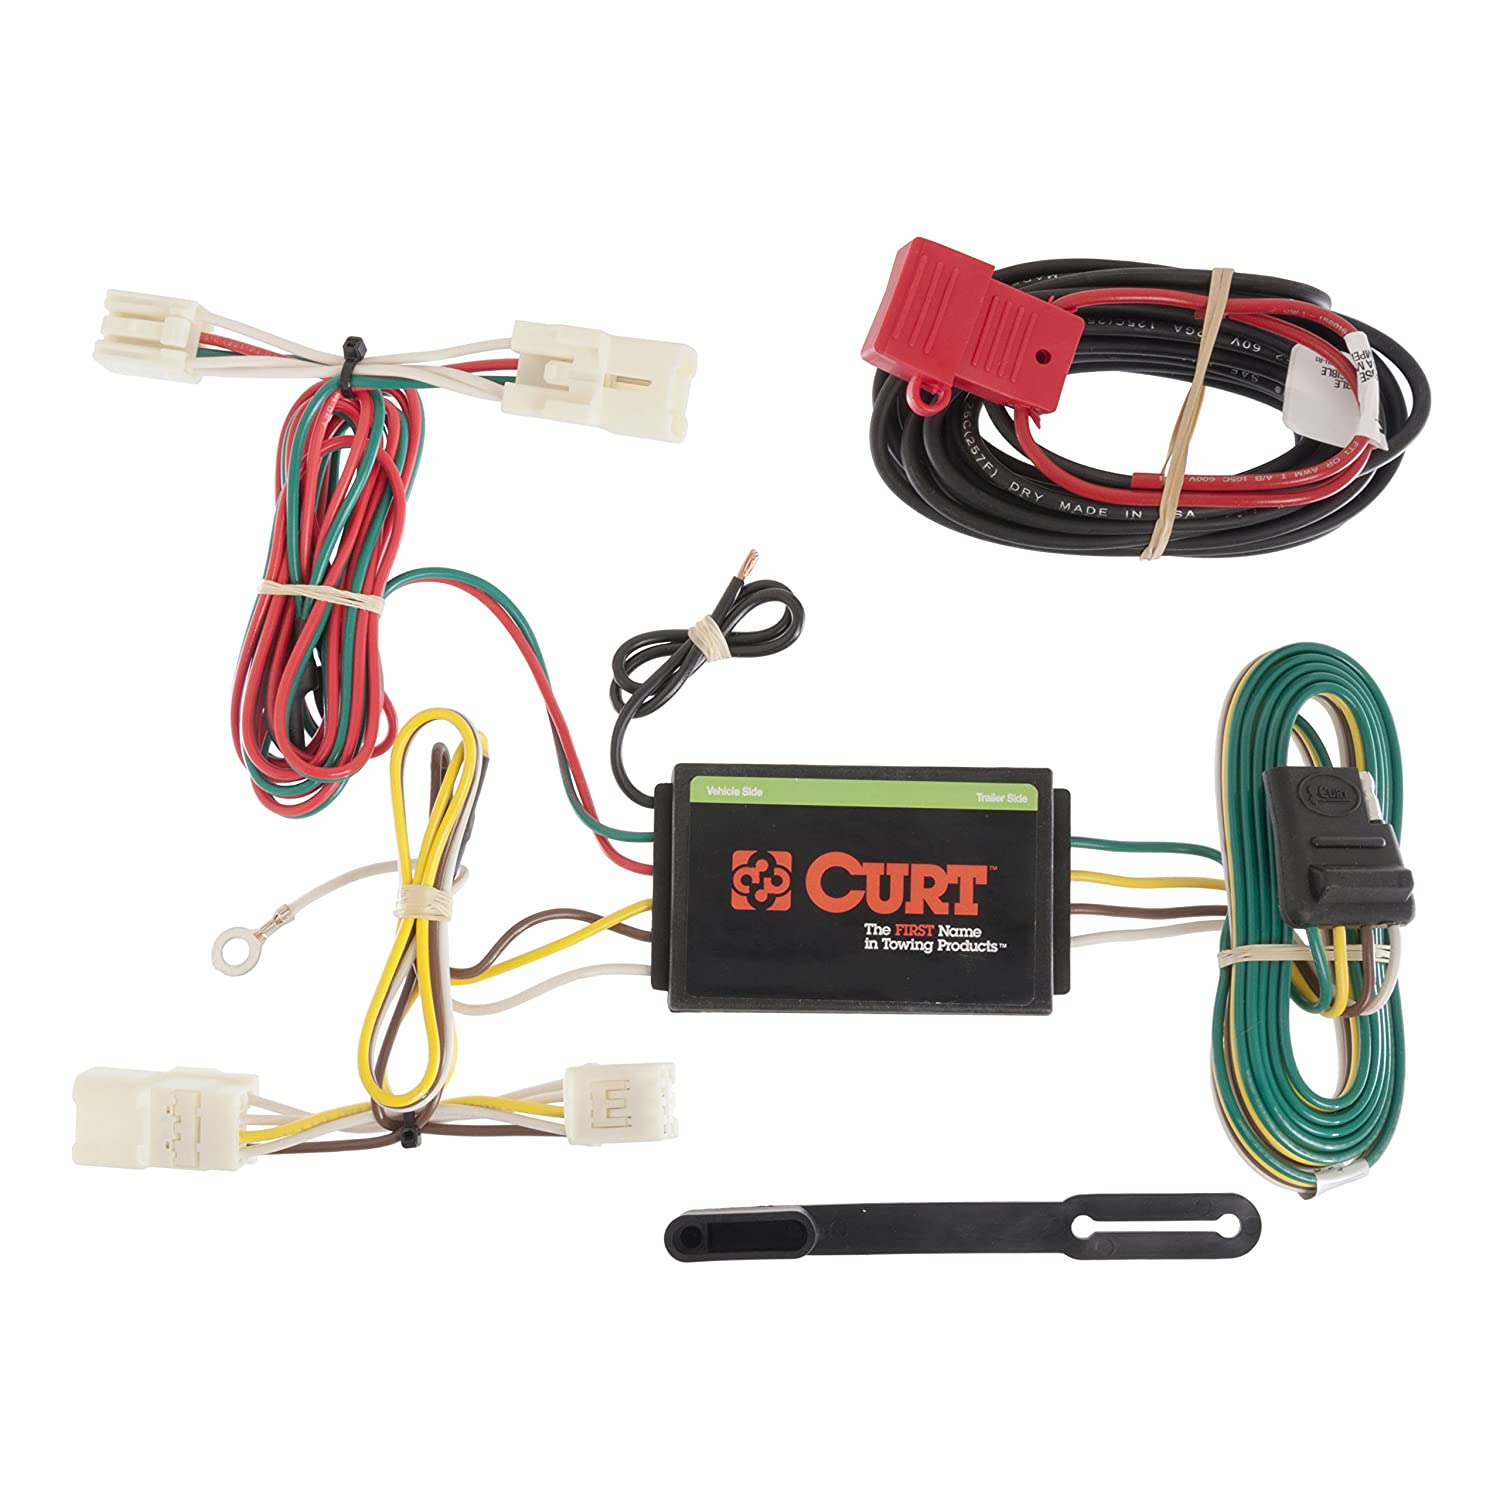 Curt Trailer Wiring Most Searched Diagram Right Now Electrical Wire Harness Testers Amazon Com Manufacturing 56165 Connector Automotive Rh Tester Kit